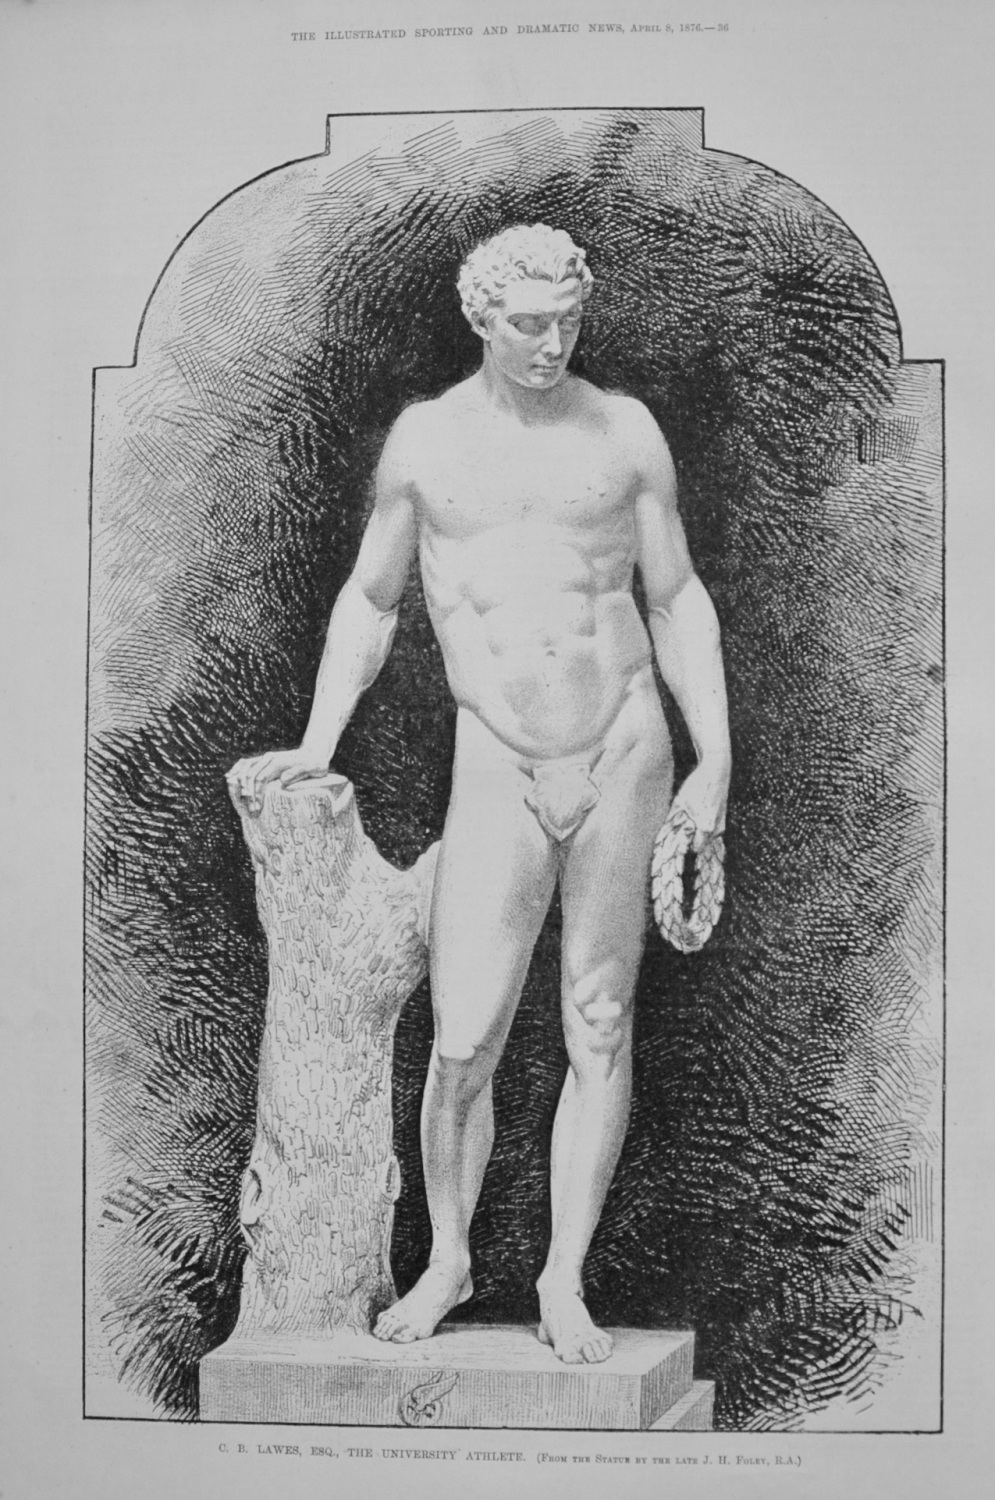 C. B. Lawes, Esq., the University Athlete. (From the Statue by the Late J.